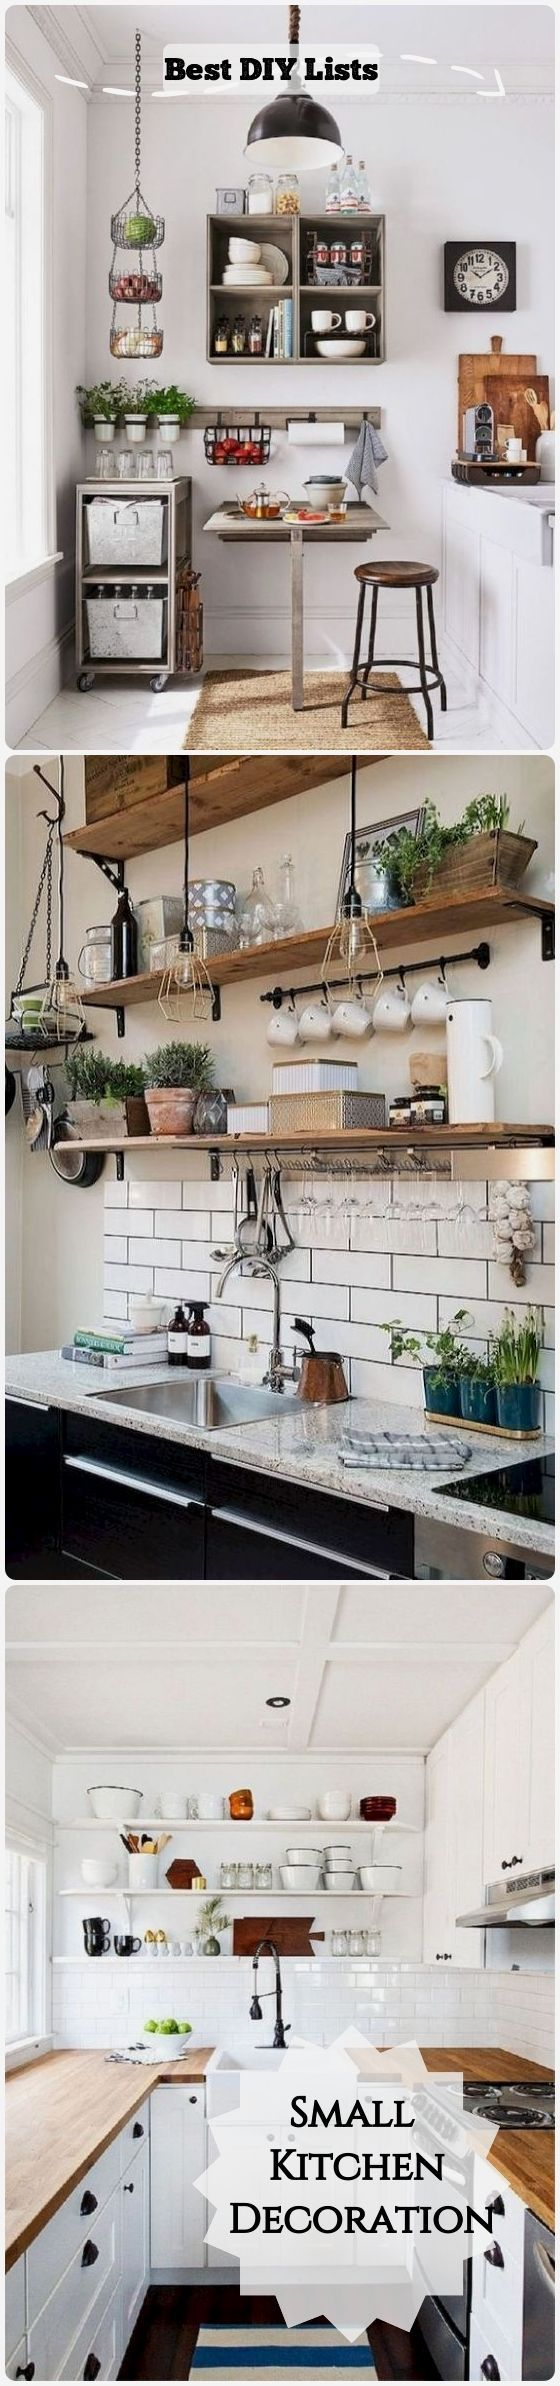 Home Interior Cuadros New Small Kitchen Decoration #kitchendecoration #kitcheninterior